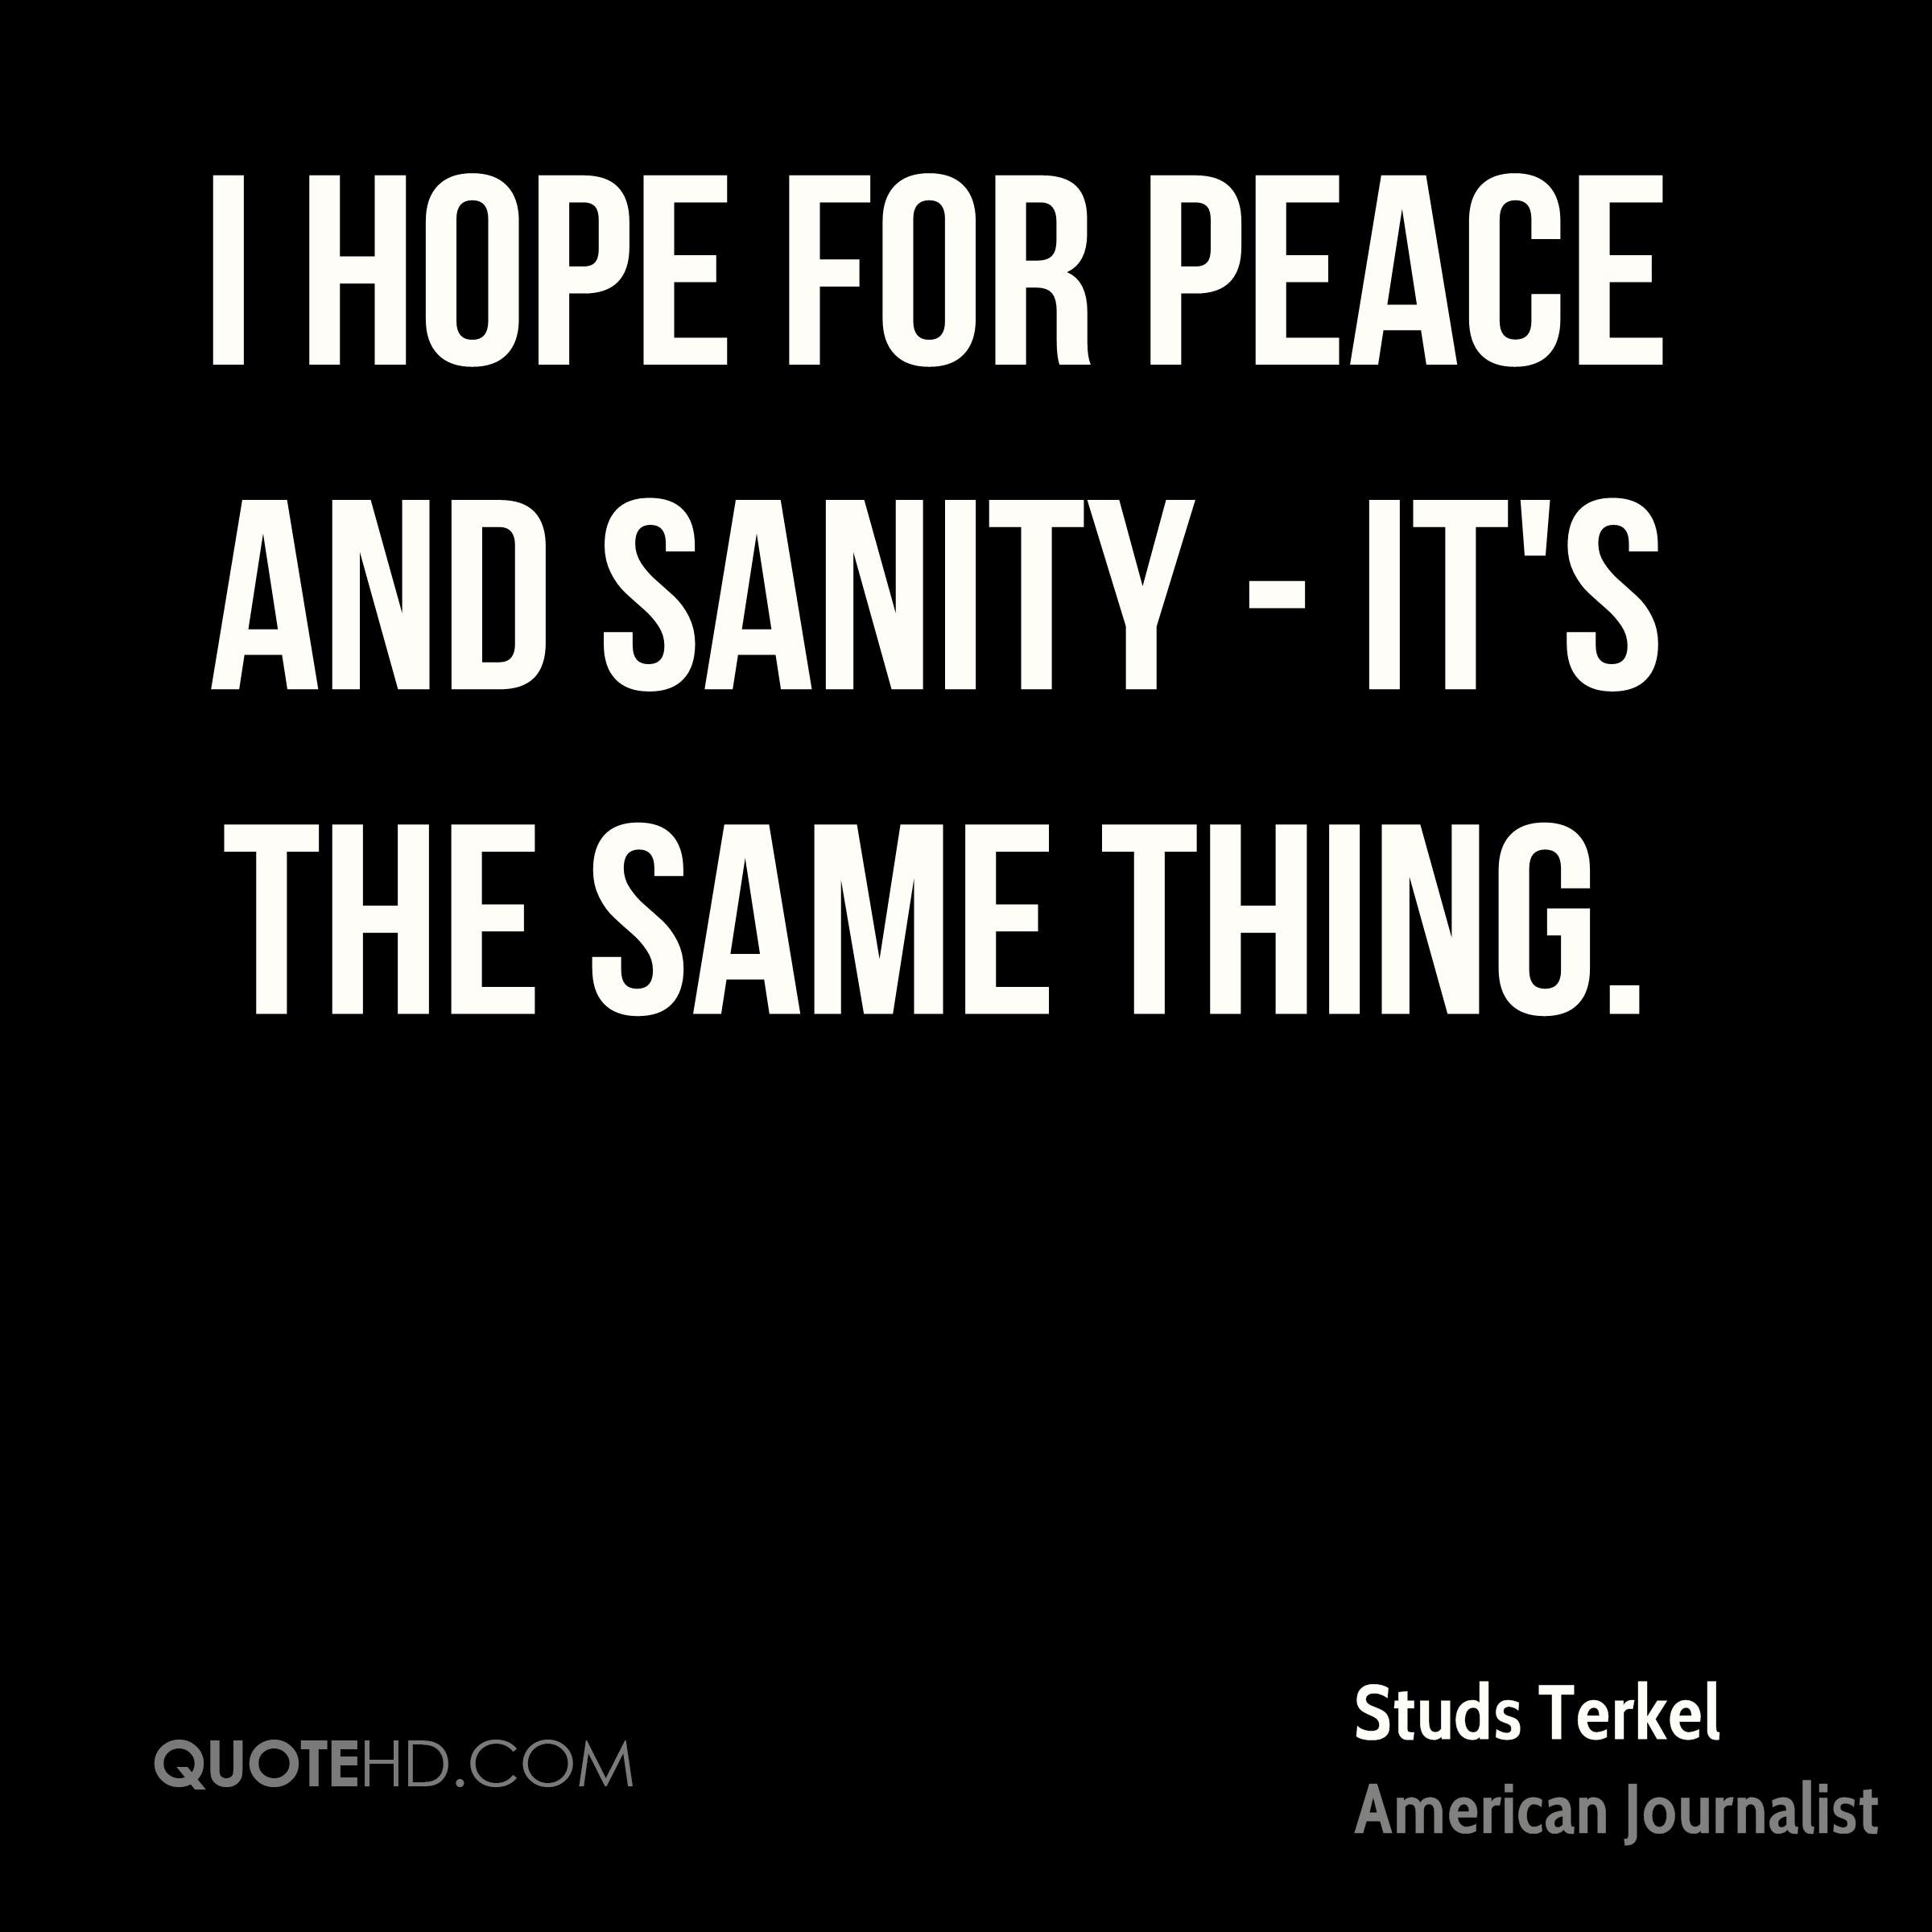 I hope for peace and sanity - it's the same thing.